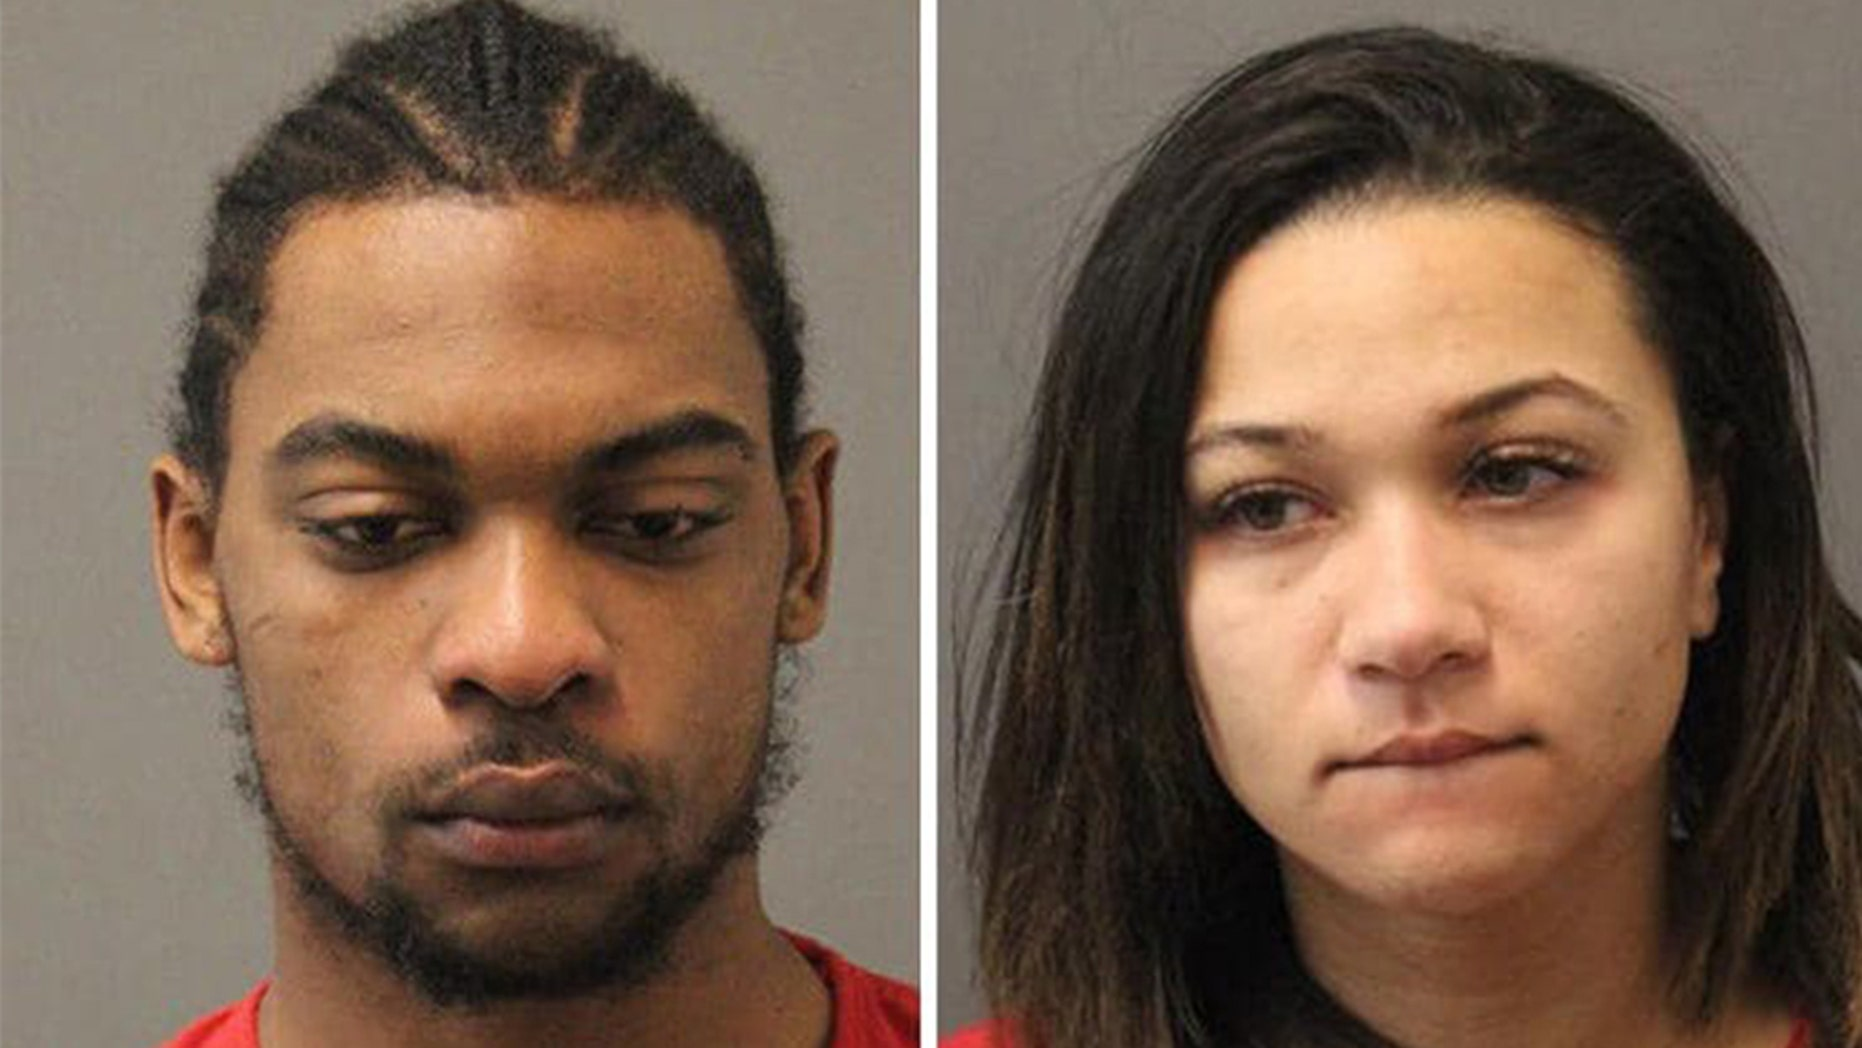 Washington Redskins safety Montae Nicholson, 23, and 24-year-old Sydney Maggiore were charged with misdemeanor assault and being drunk in public.